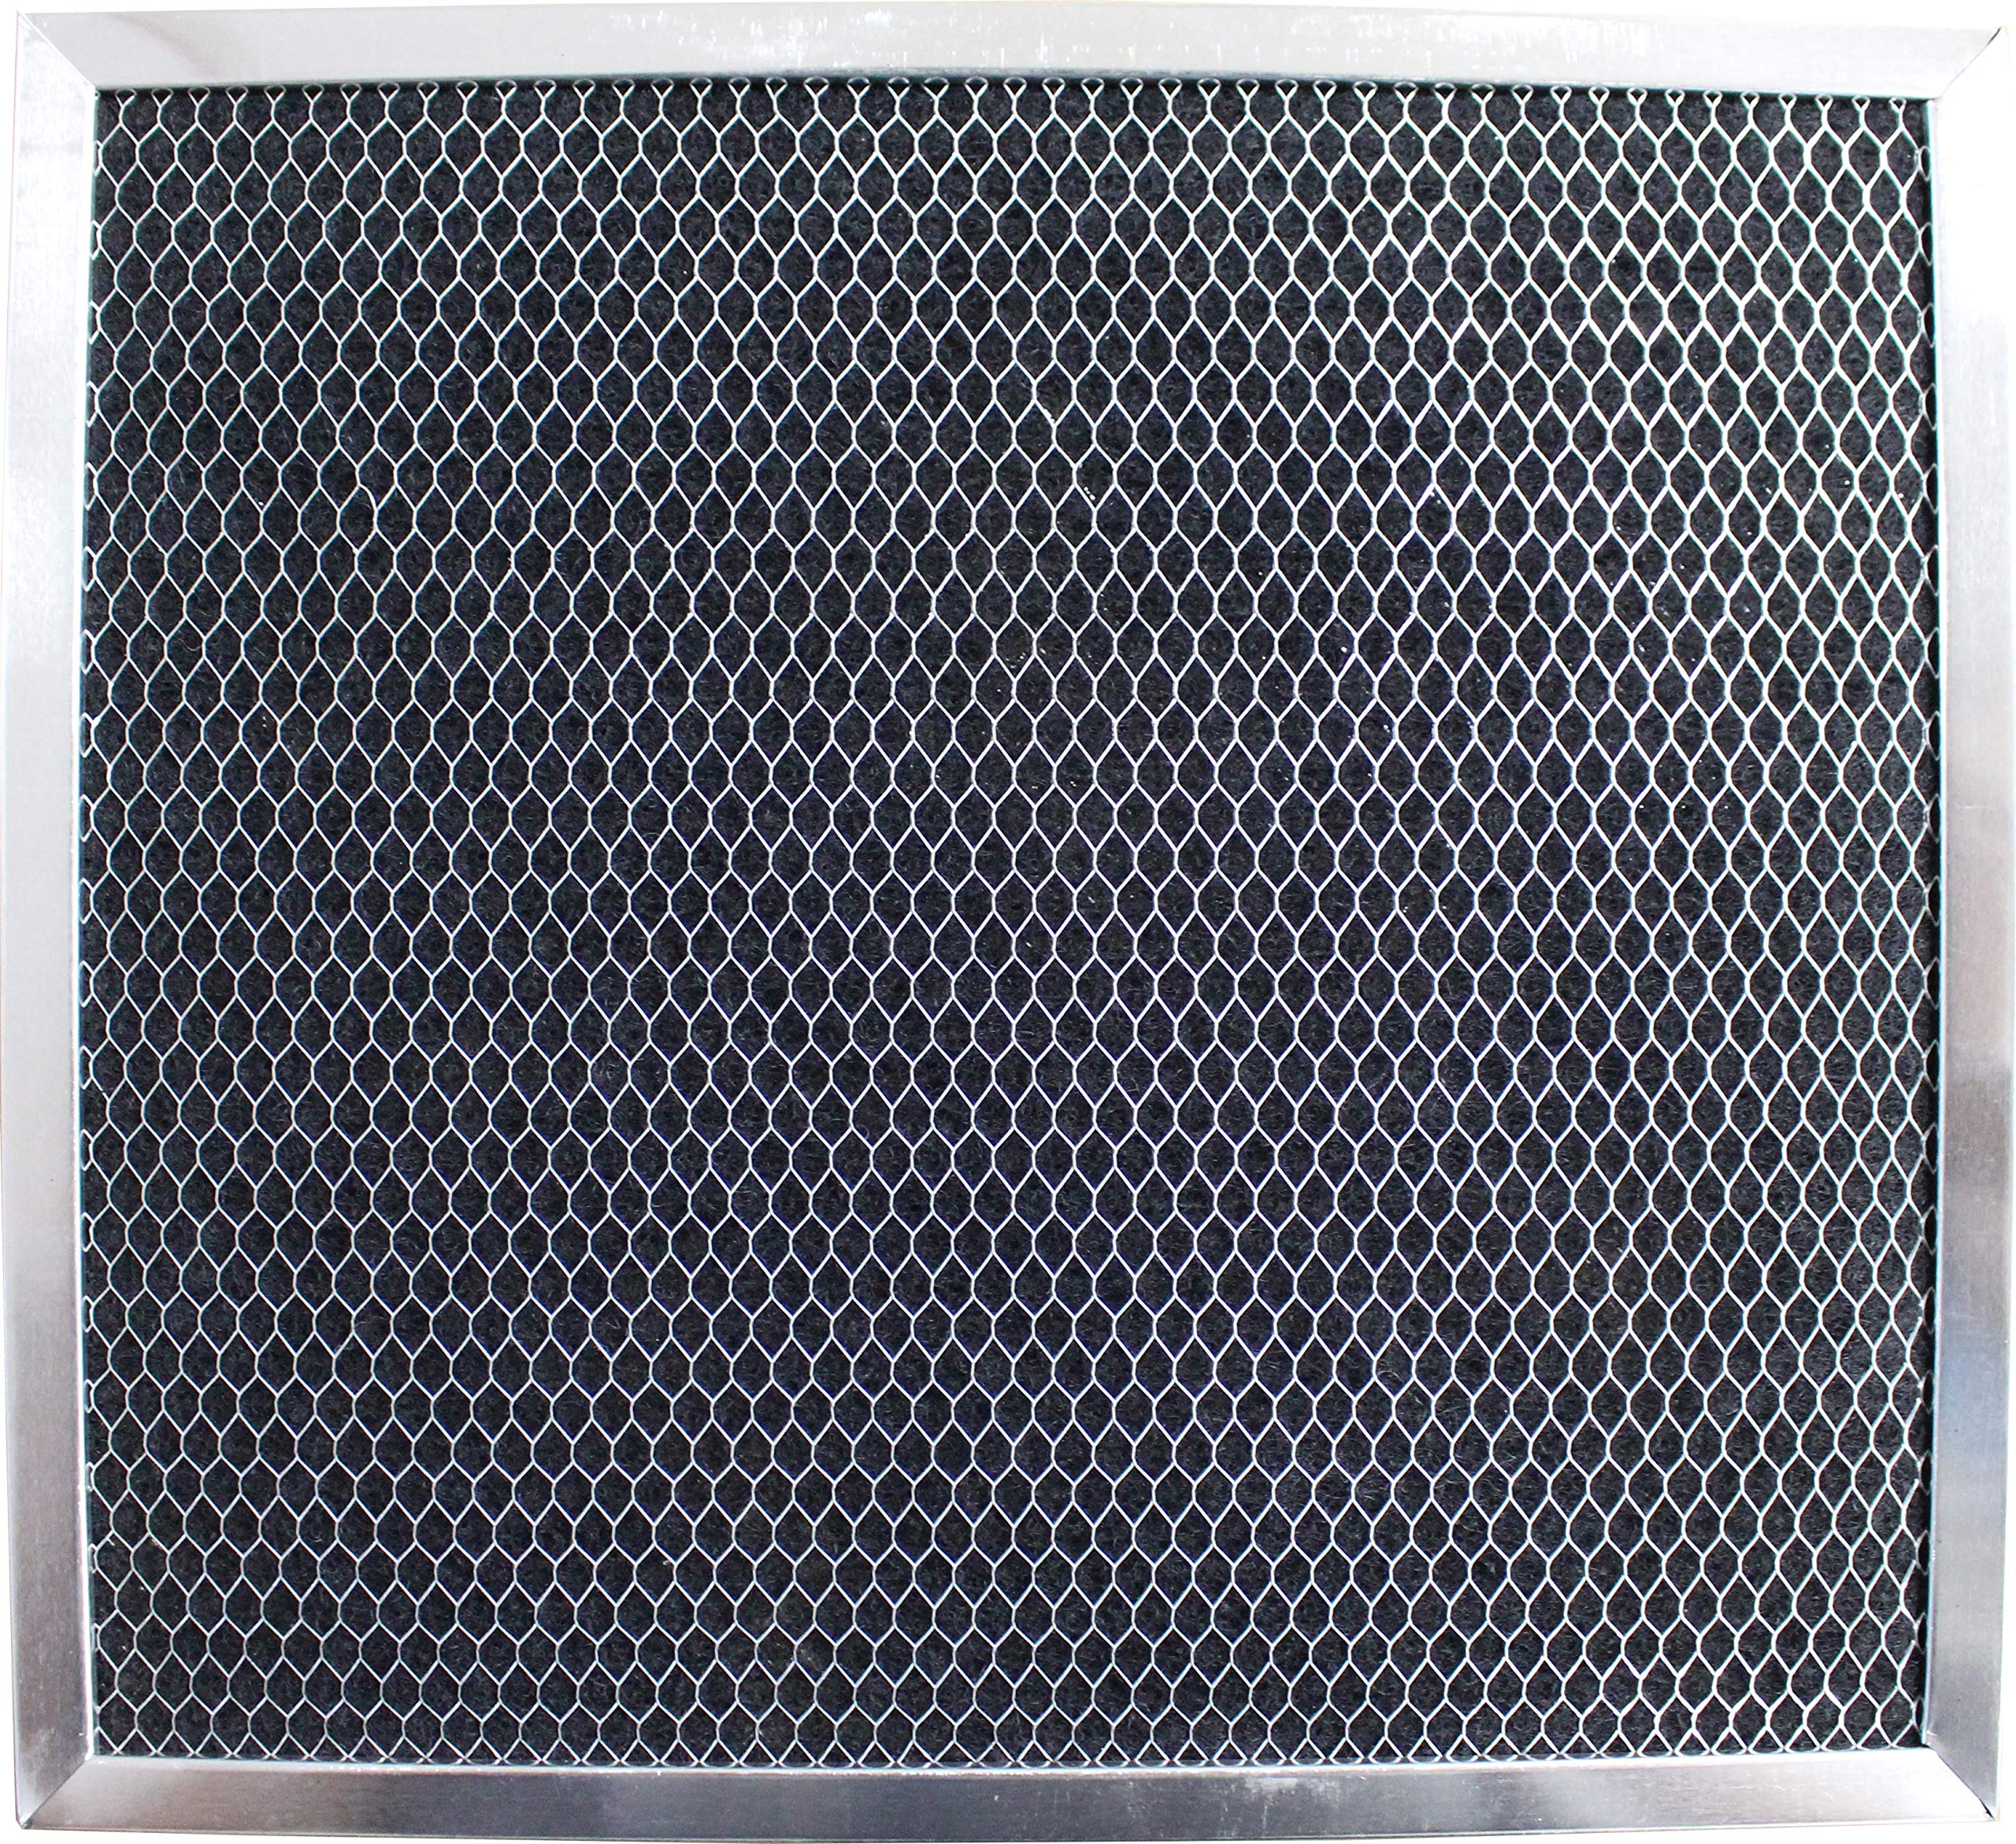 Replacement Carbon Filters compatible with GE:WB2X2891 WB2X9760 Broan / Nutone: 99010113 99010187 GE